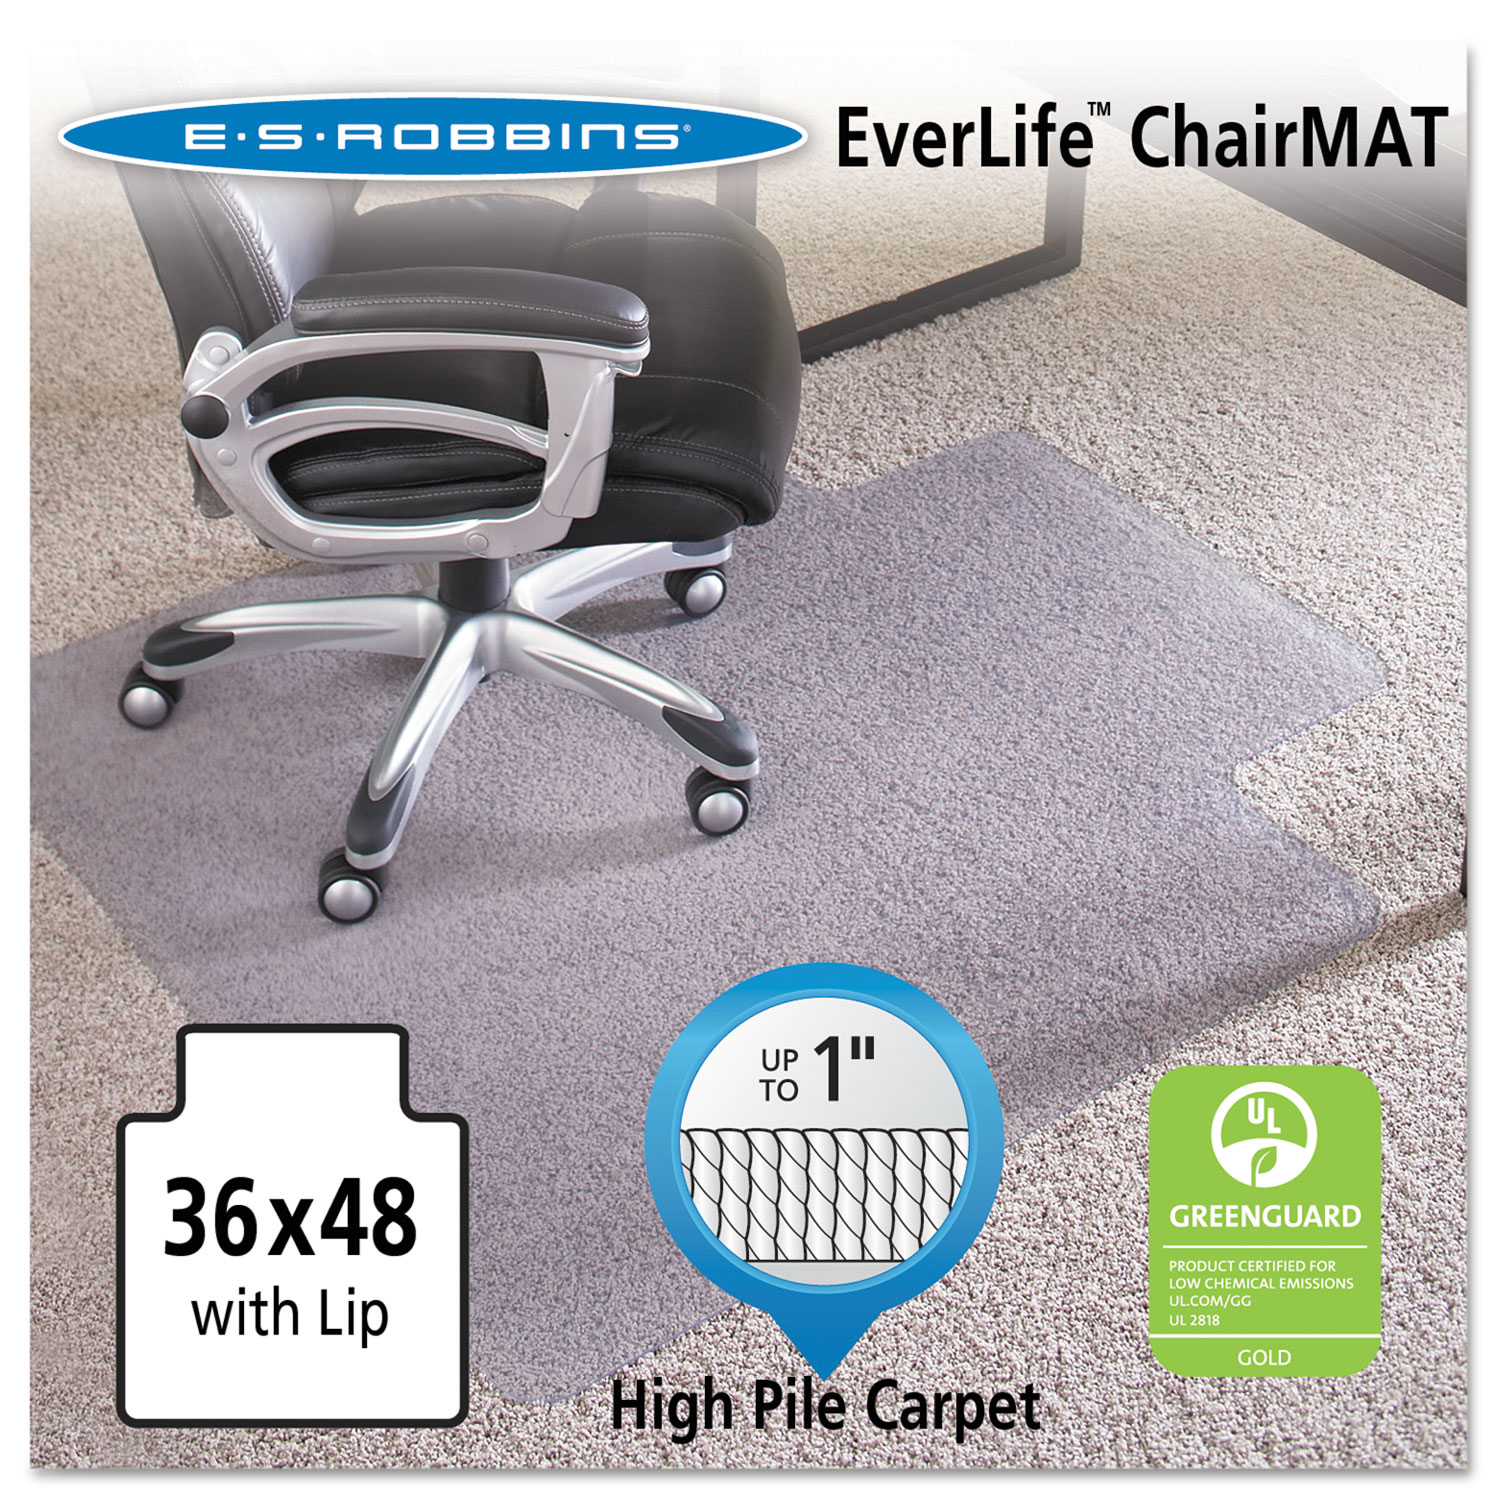 36x48 lip chair mat by es robbinsa esr124054 ontimesupplies com